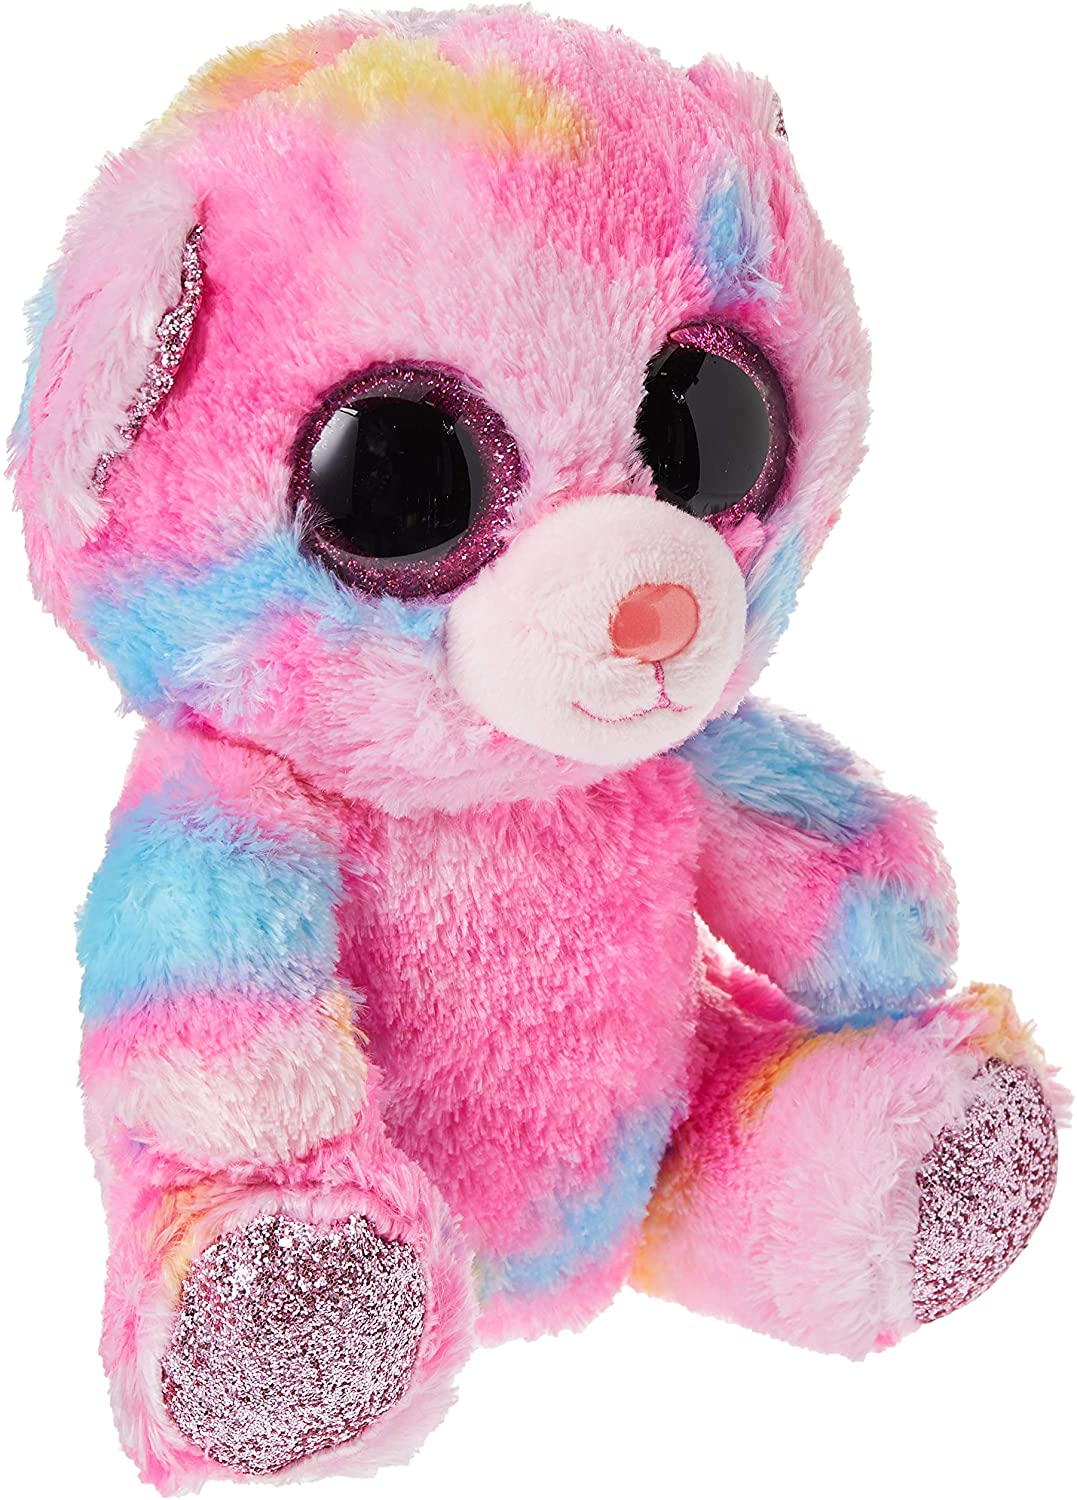 Baby Ko Toddler Ty Beanie Boos Franky Pink Multicolored Bear Samko